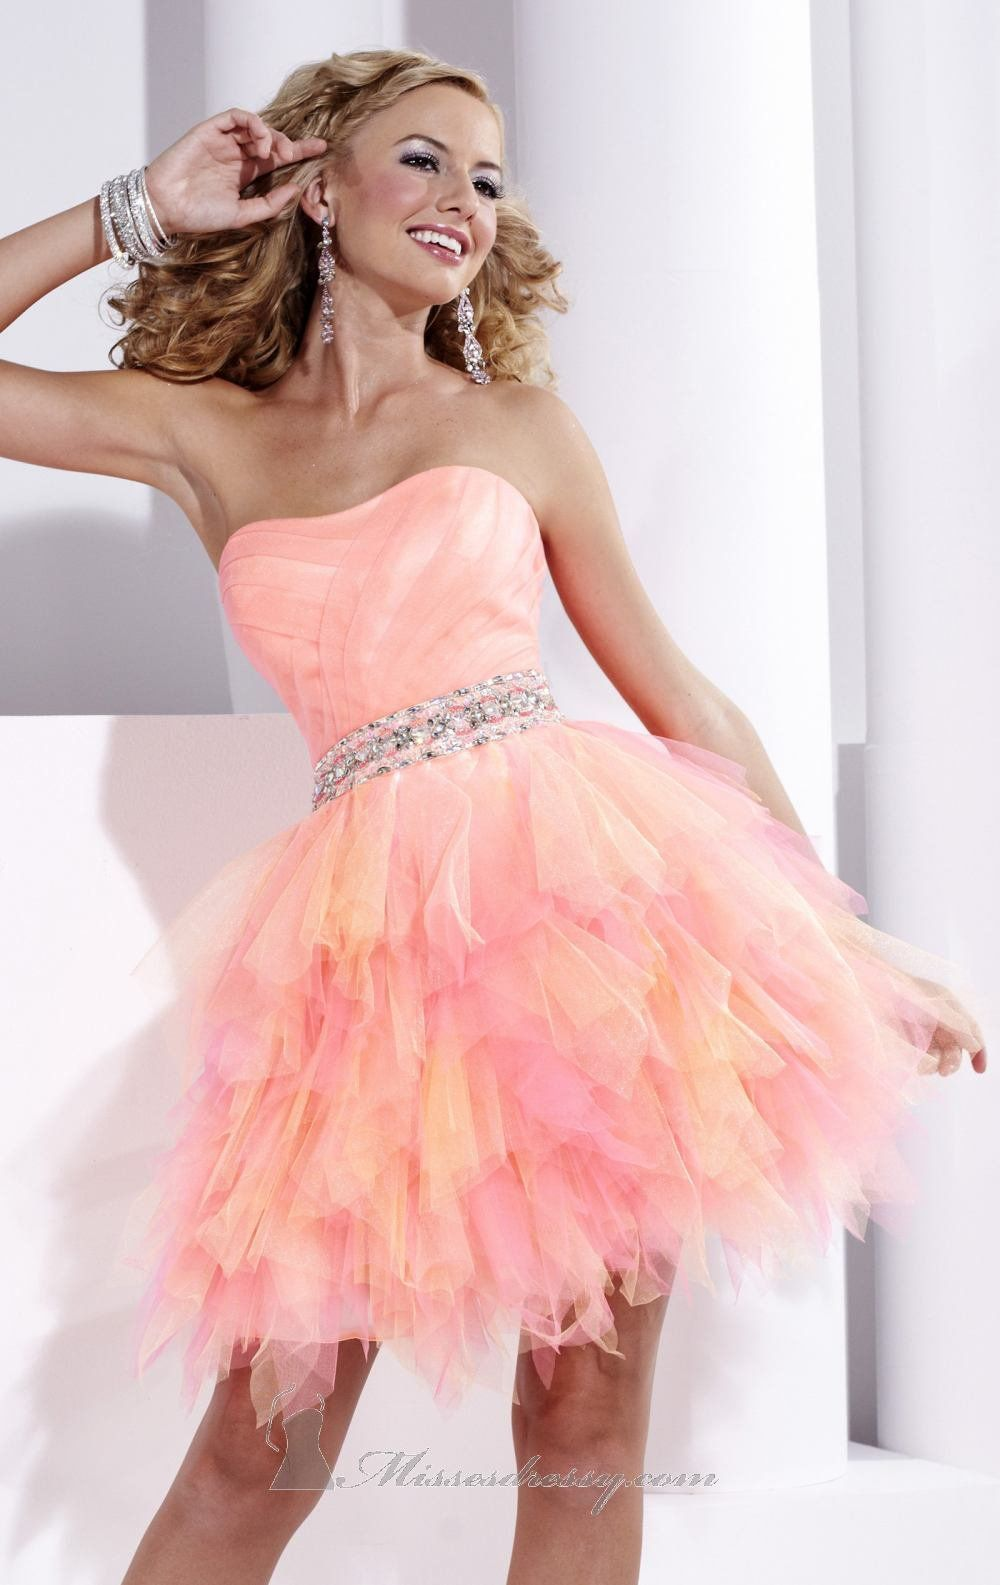 Love this so much hope I get something like this for my grade 8 grad ...